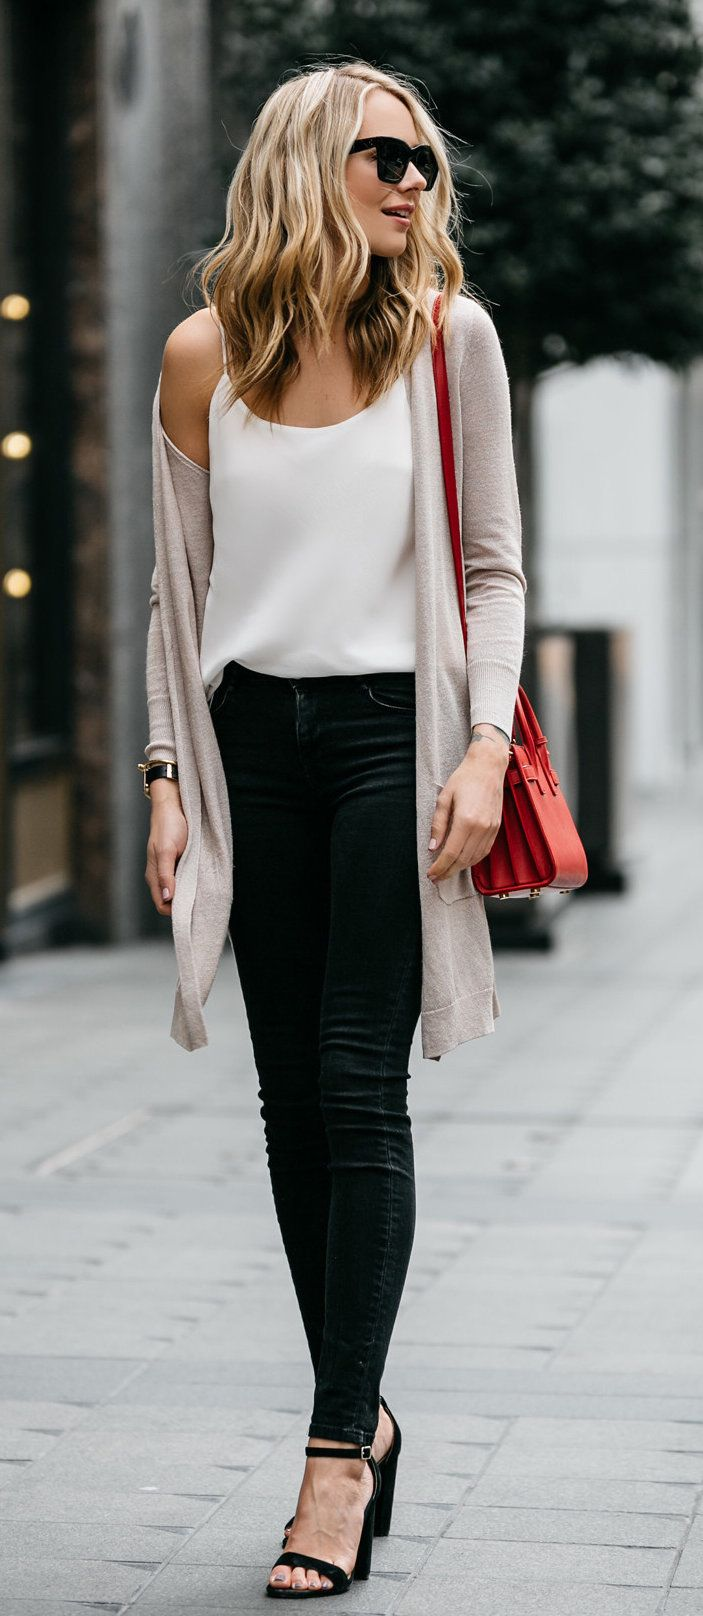 Summer Outfits Beige Cardigan White Tank Black Skinny